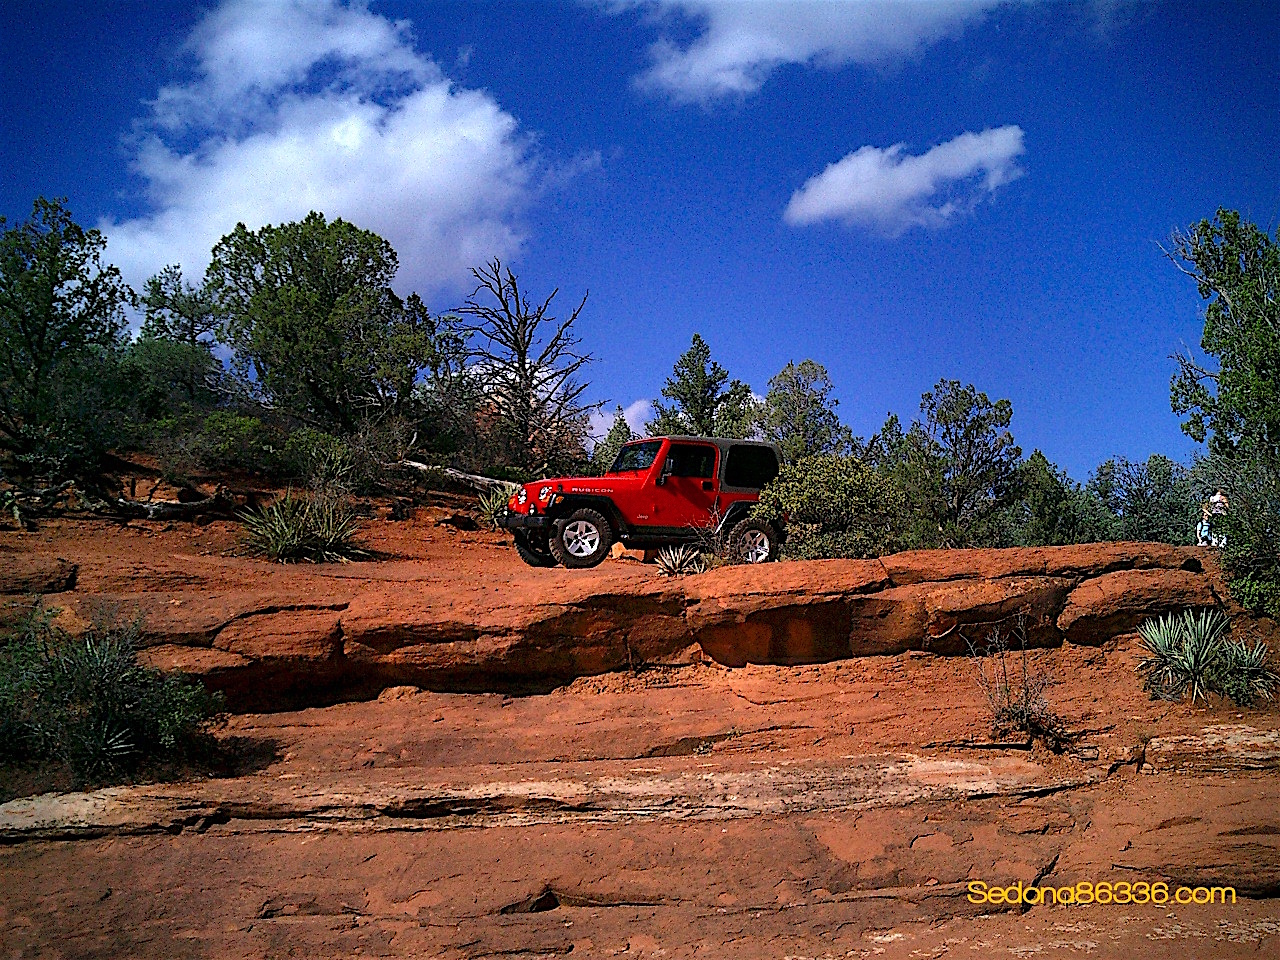 Soldiers Pass Trail West Sedona Sheri Sperry Coldwell Banker top sedona real estate agent